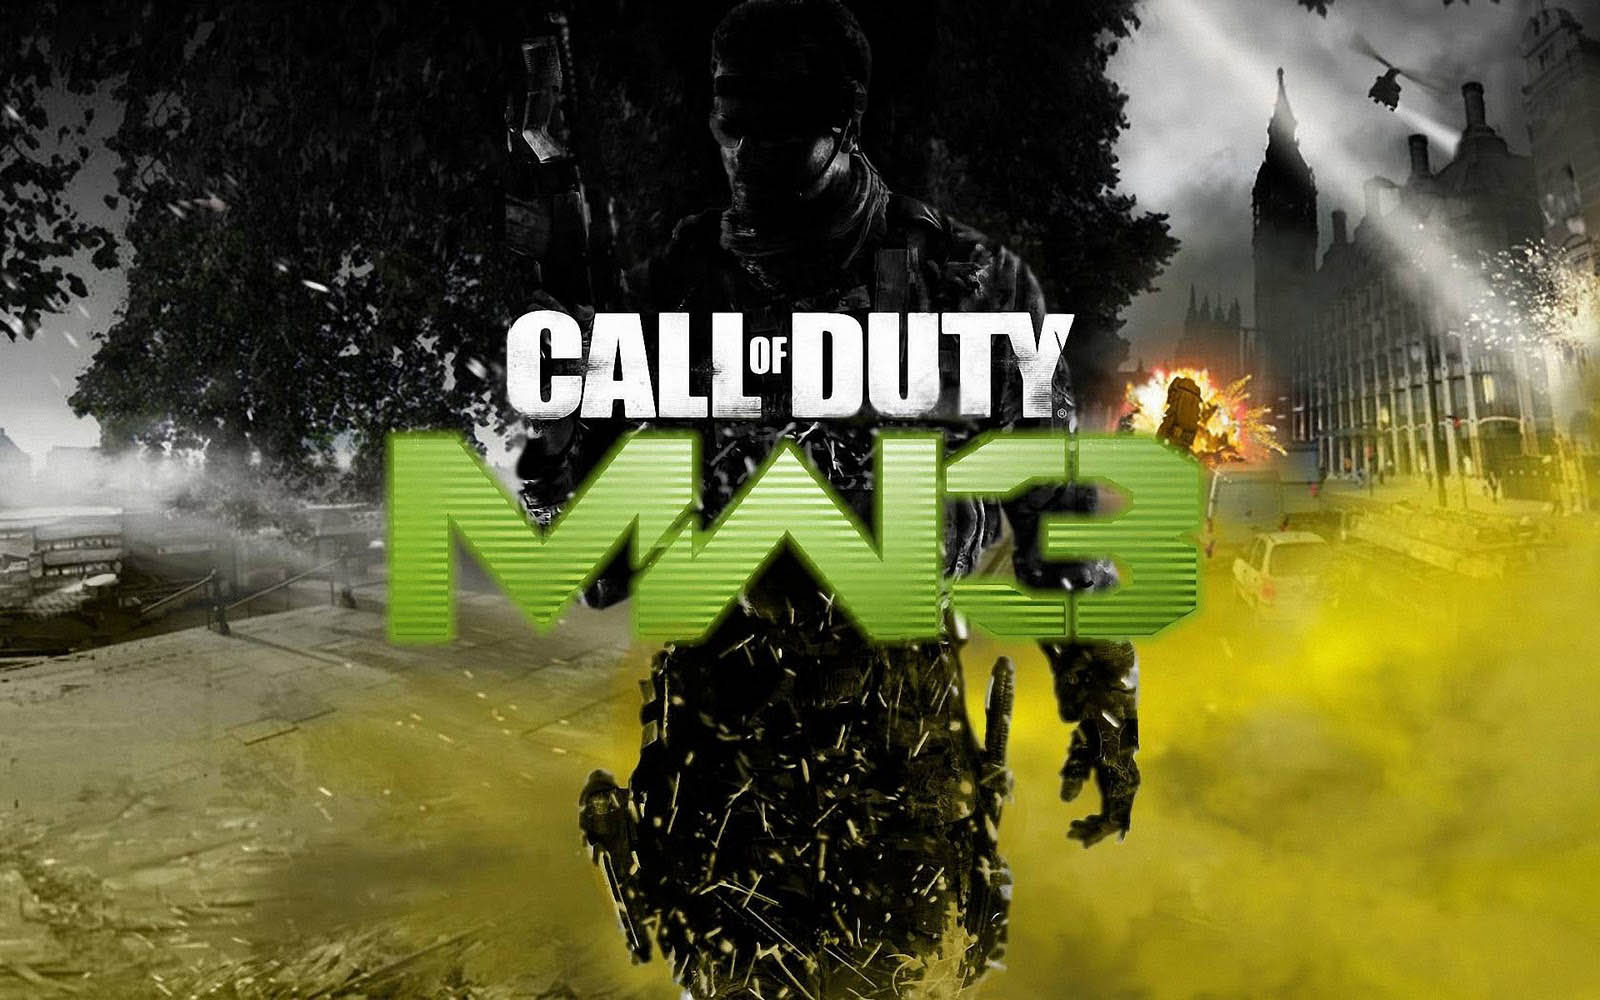 HOT 2013 Popular Call Of Duty Modern Warfare 3 Game Wallpapers